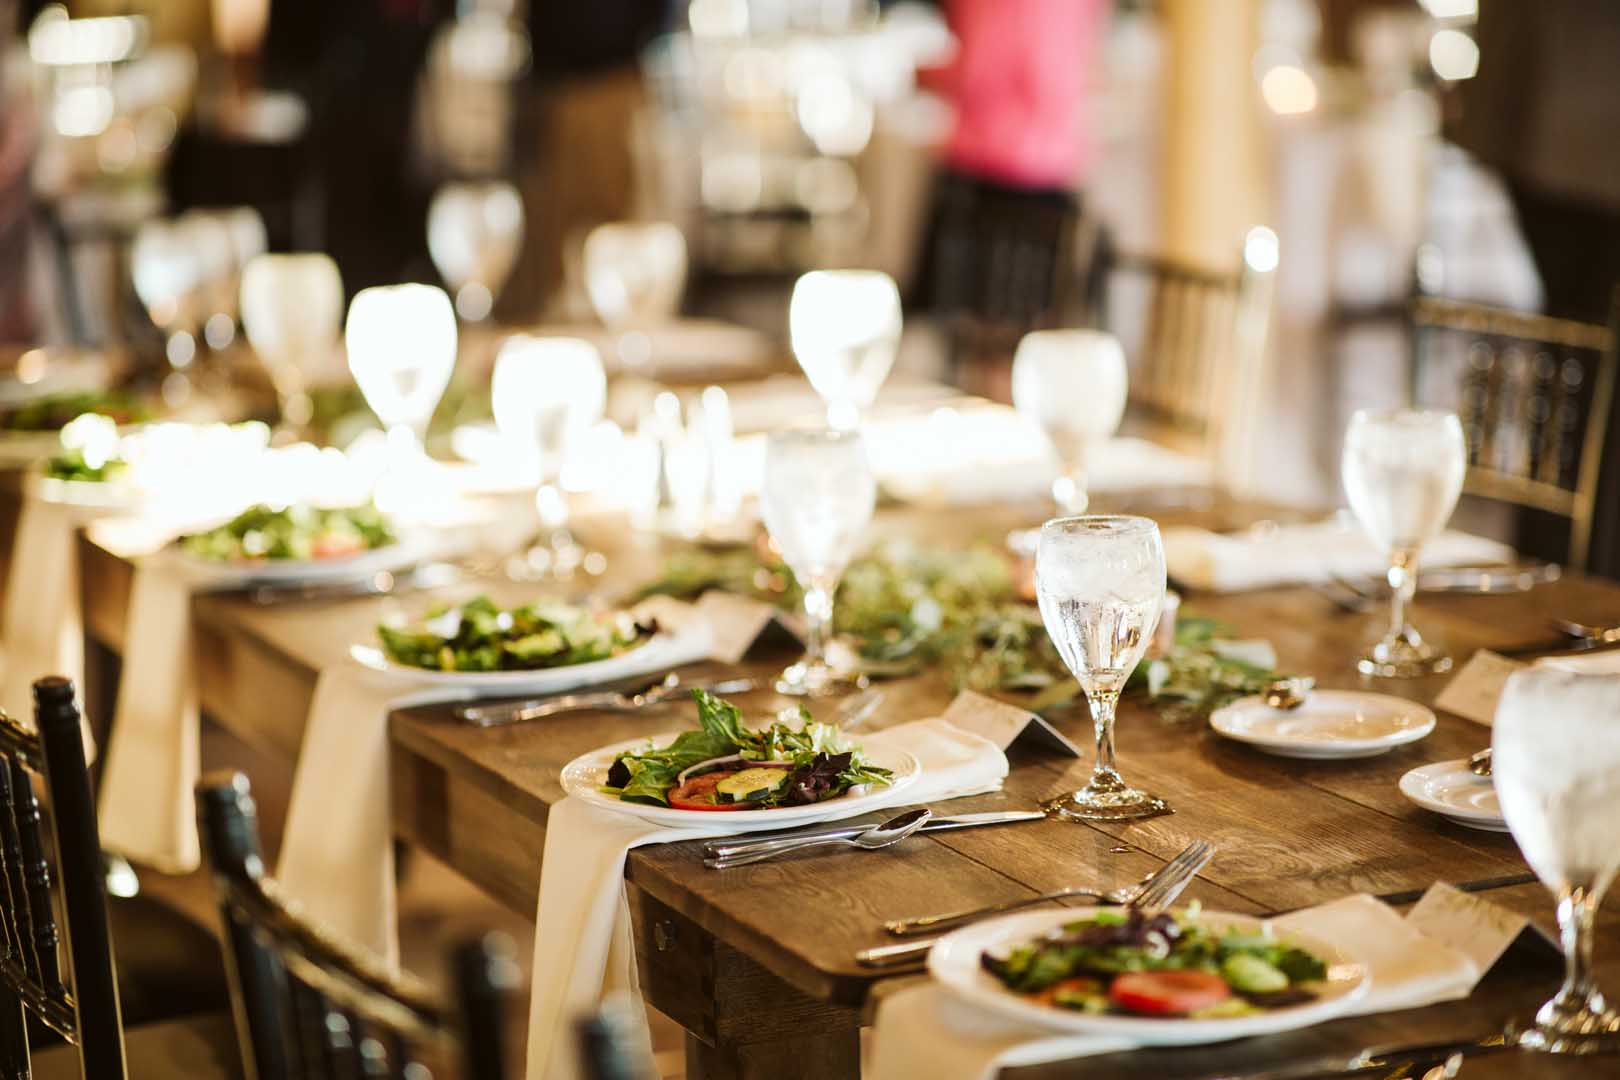 Head table for a wedding reception set with glasses and salads for the bridal party